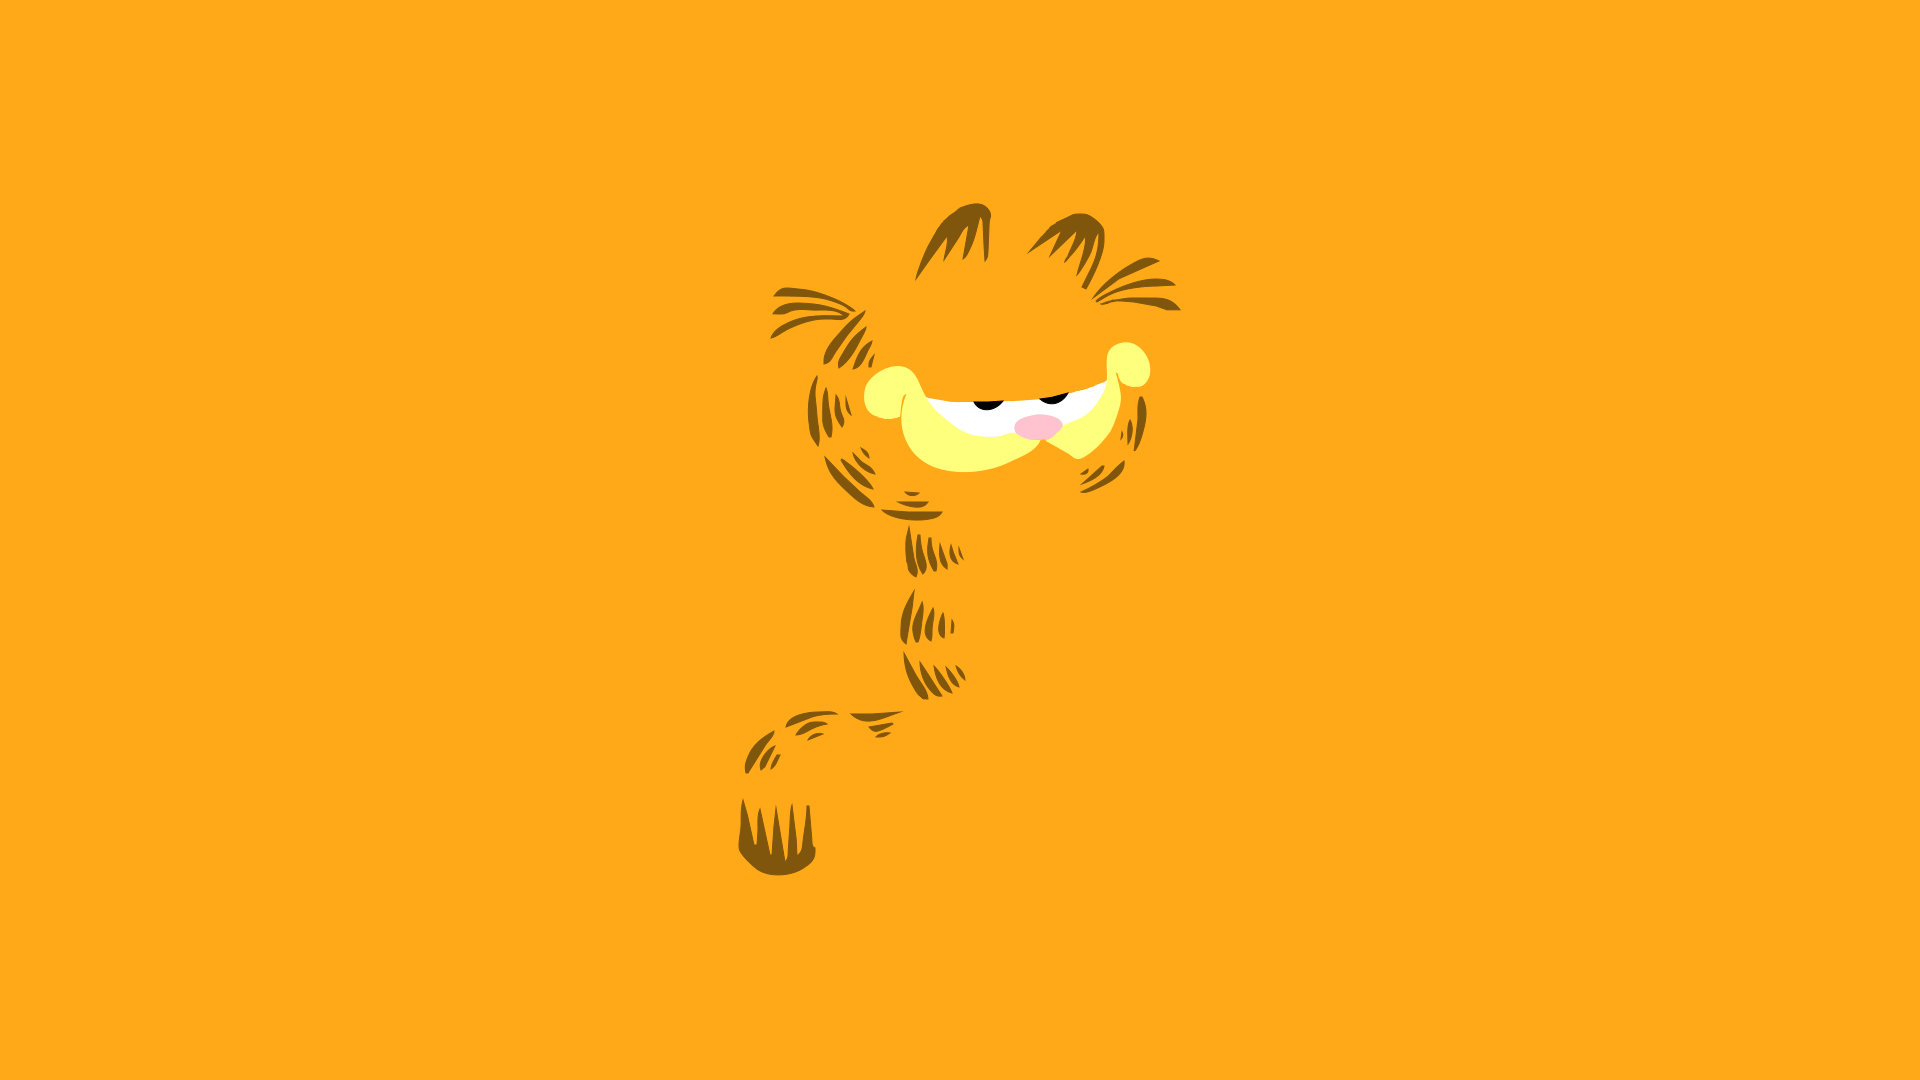 Minimal garfield wallpaper by cheetashock on deviantart for Deviantart minimal wallpaper